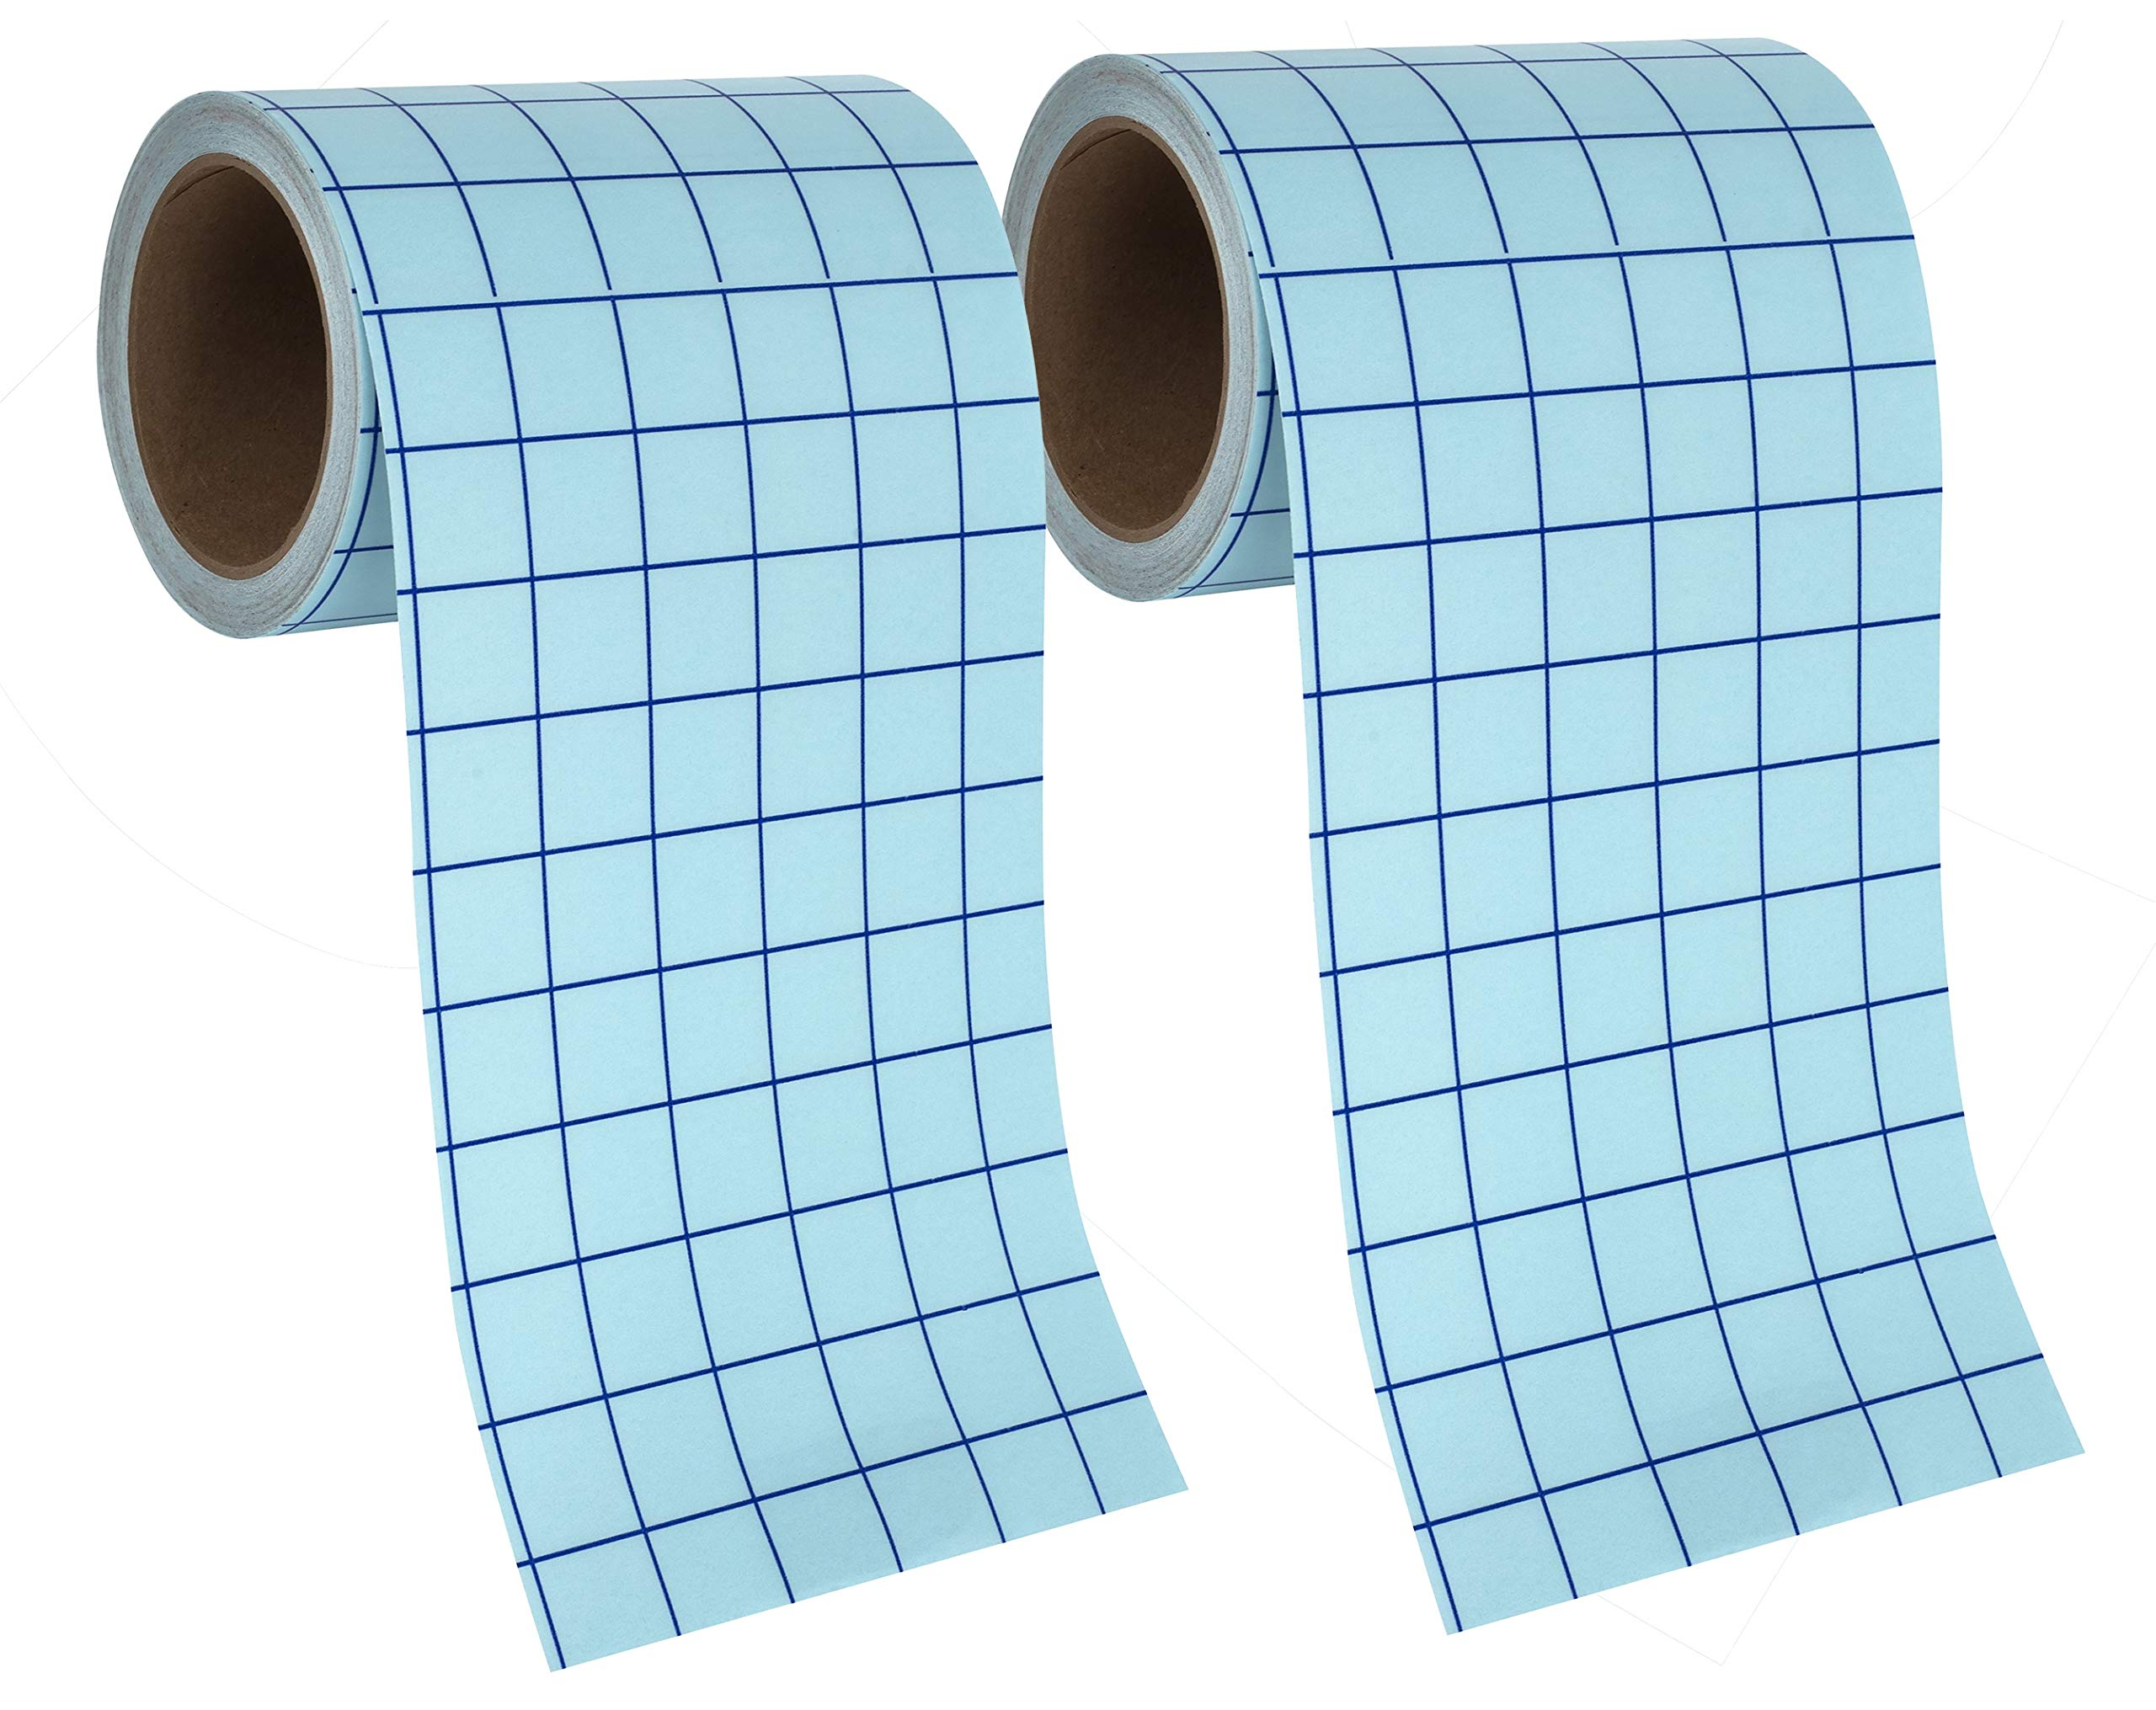 Angel Crafts Transfer Paper Tape 2pk: Craft Transfer Tape for Vinyl Application with Grid Lines - Self Adhesive Transfer Paper Roll Compatible with Cricut, Silhouette Cameo - 6 Inch by 50 Feet, Clear by Angel Crafts